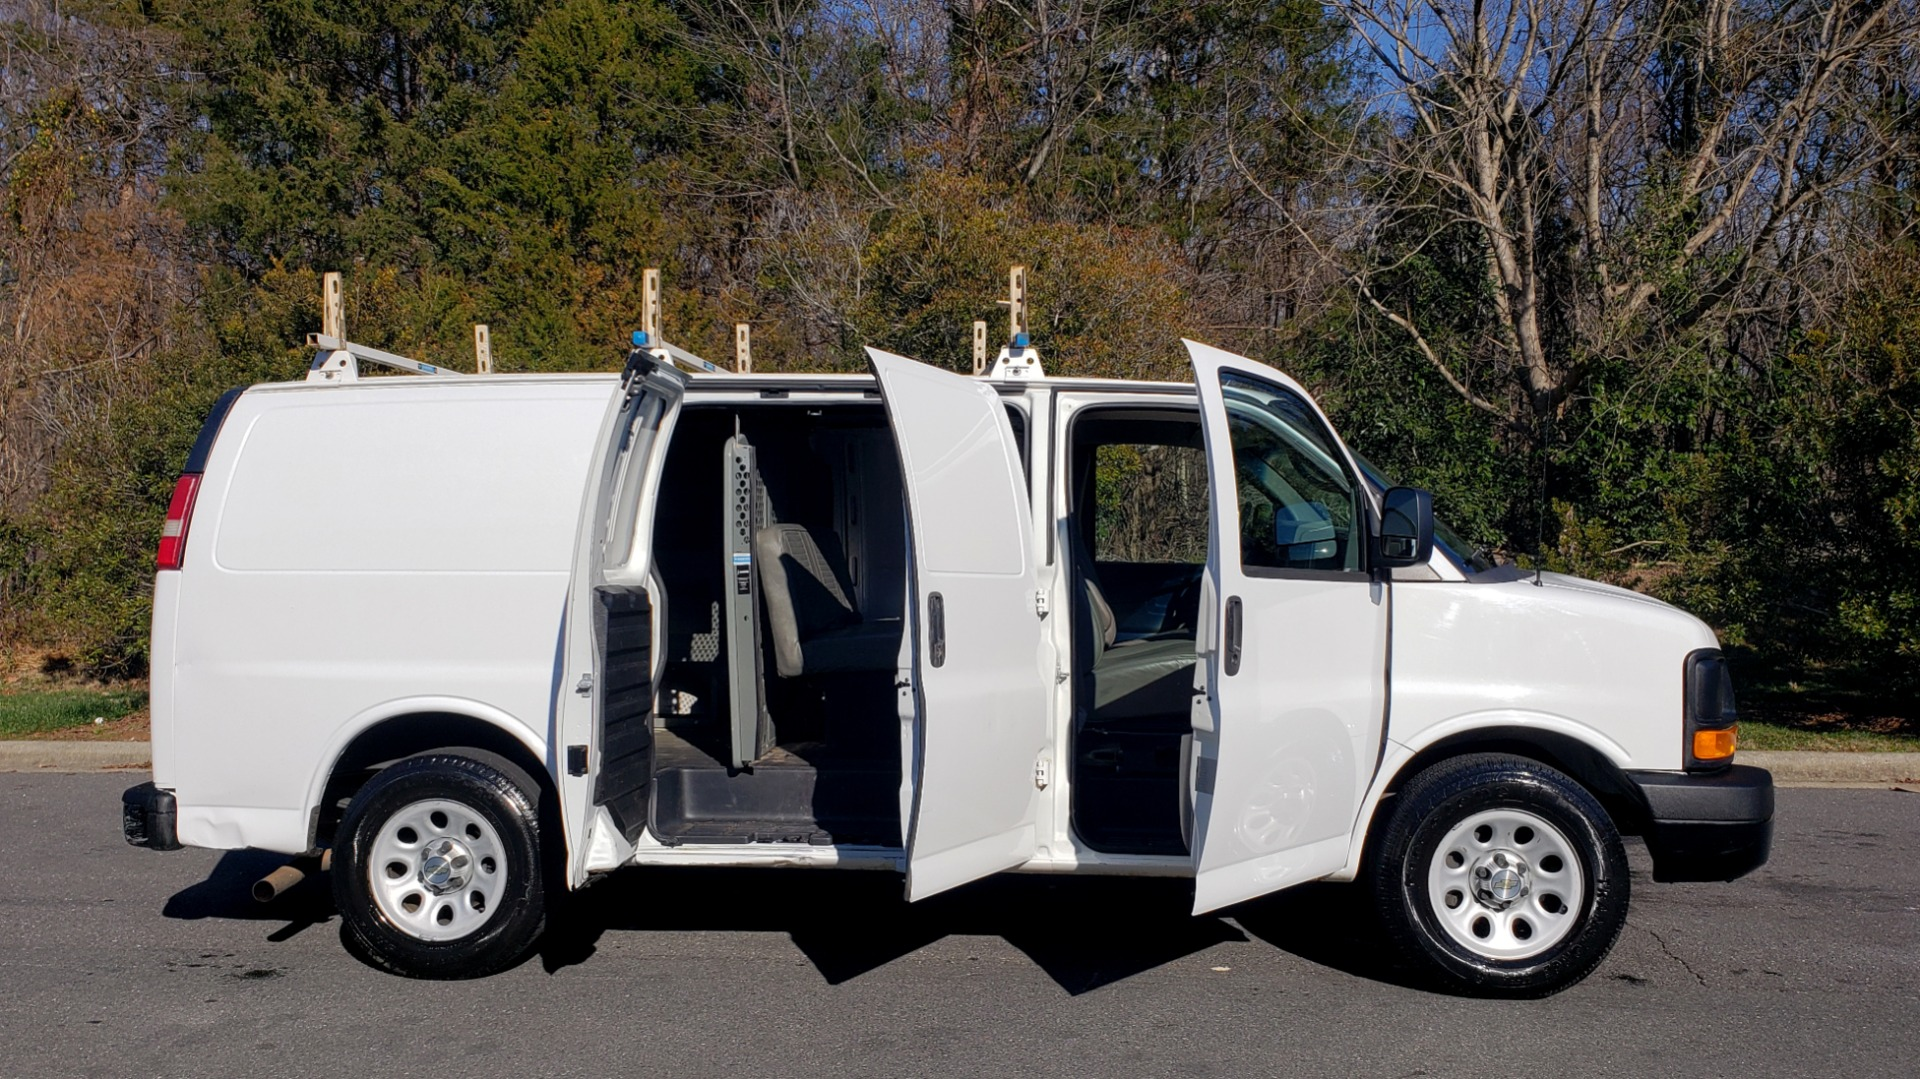 Used 2012 Chevrolet EXPRESS WORK VAN 1500 / 135 WB / 4.3L V6 / 4-SPD AUTO / ROOF RACK for sale $11,600 at Formula Imports in Charlotte NC 28227 8